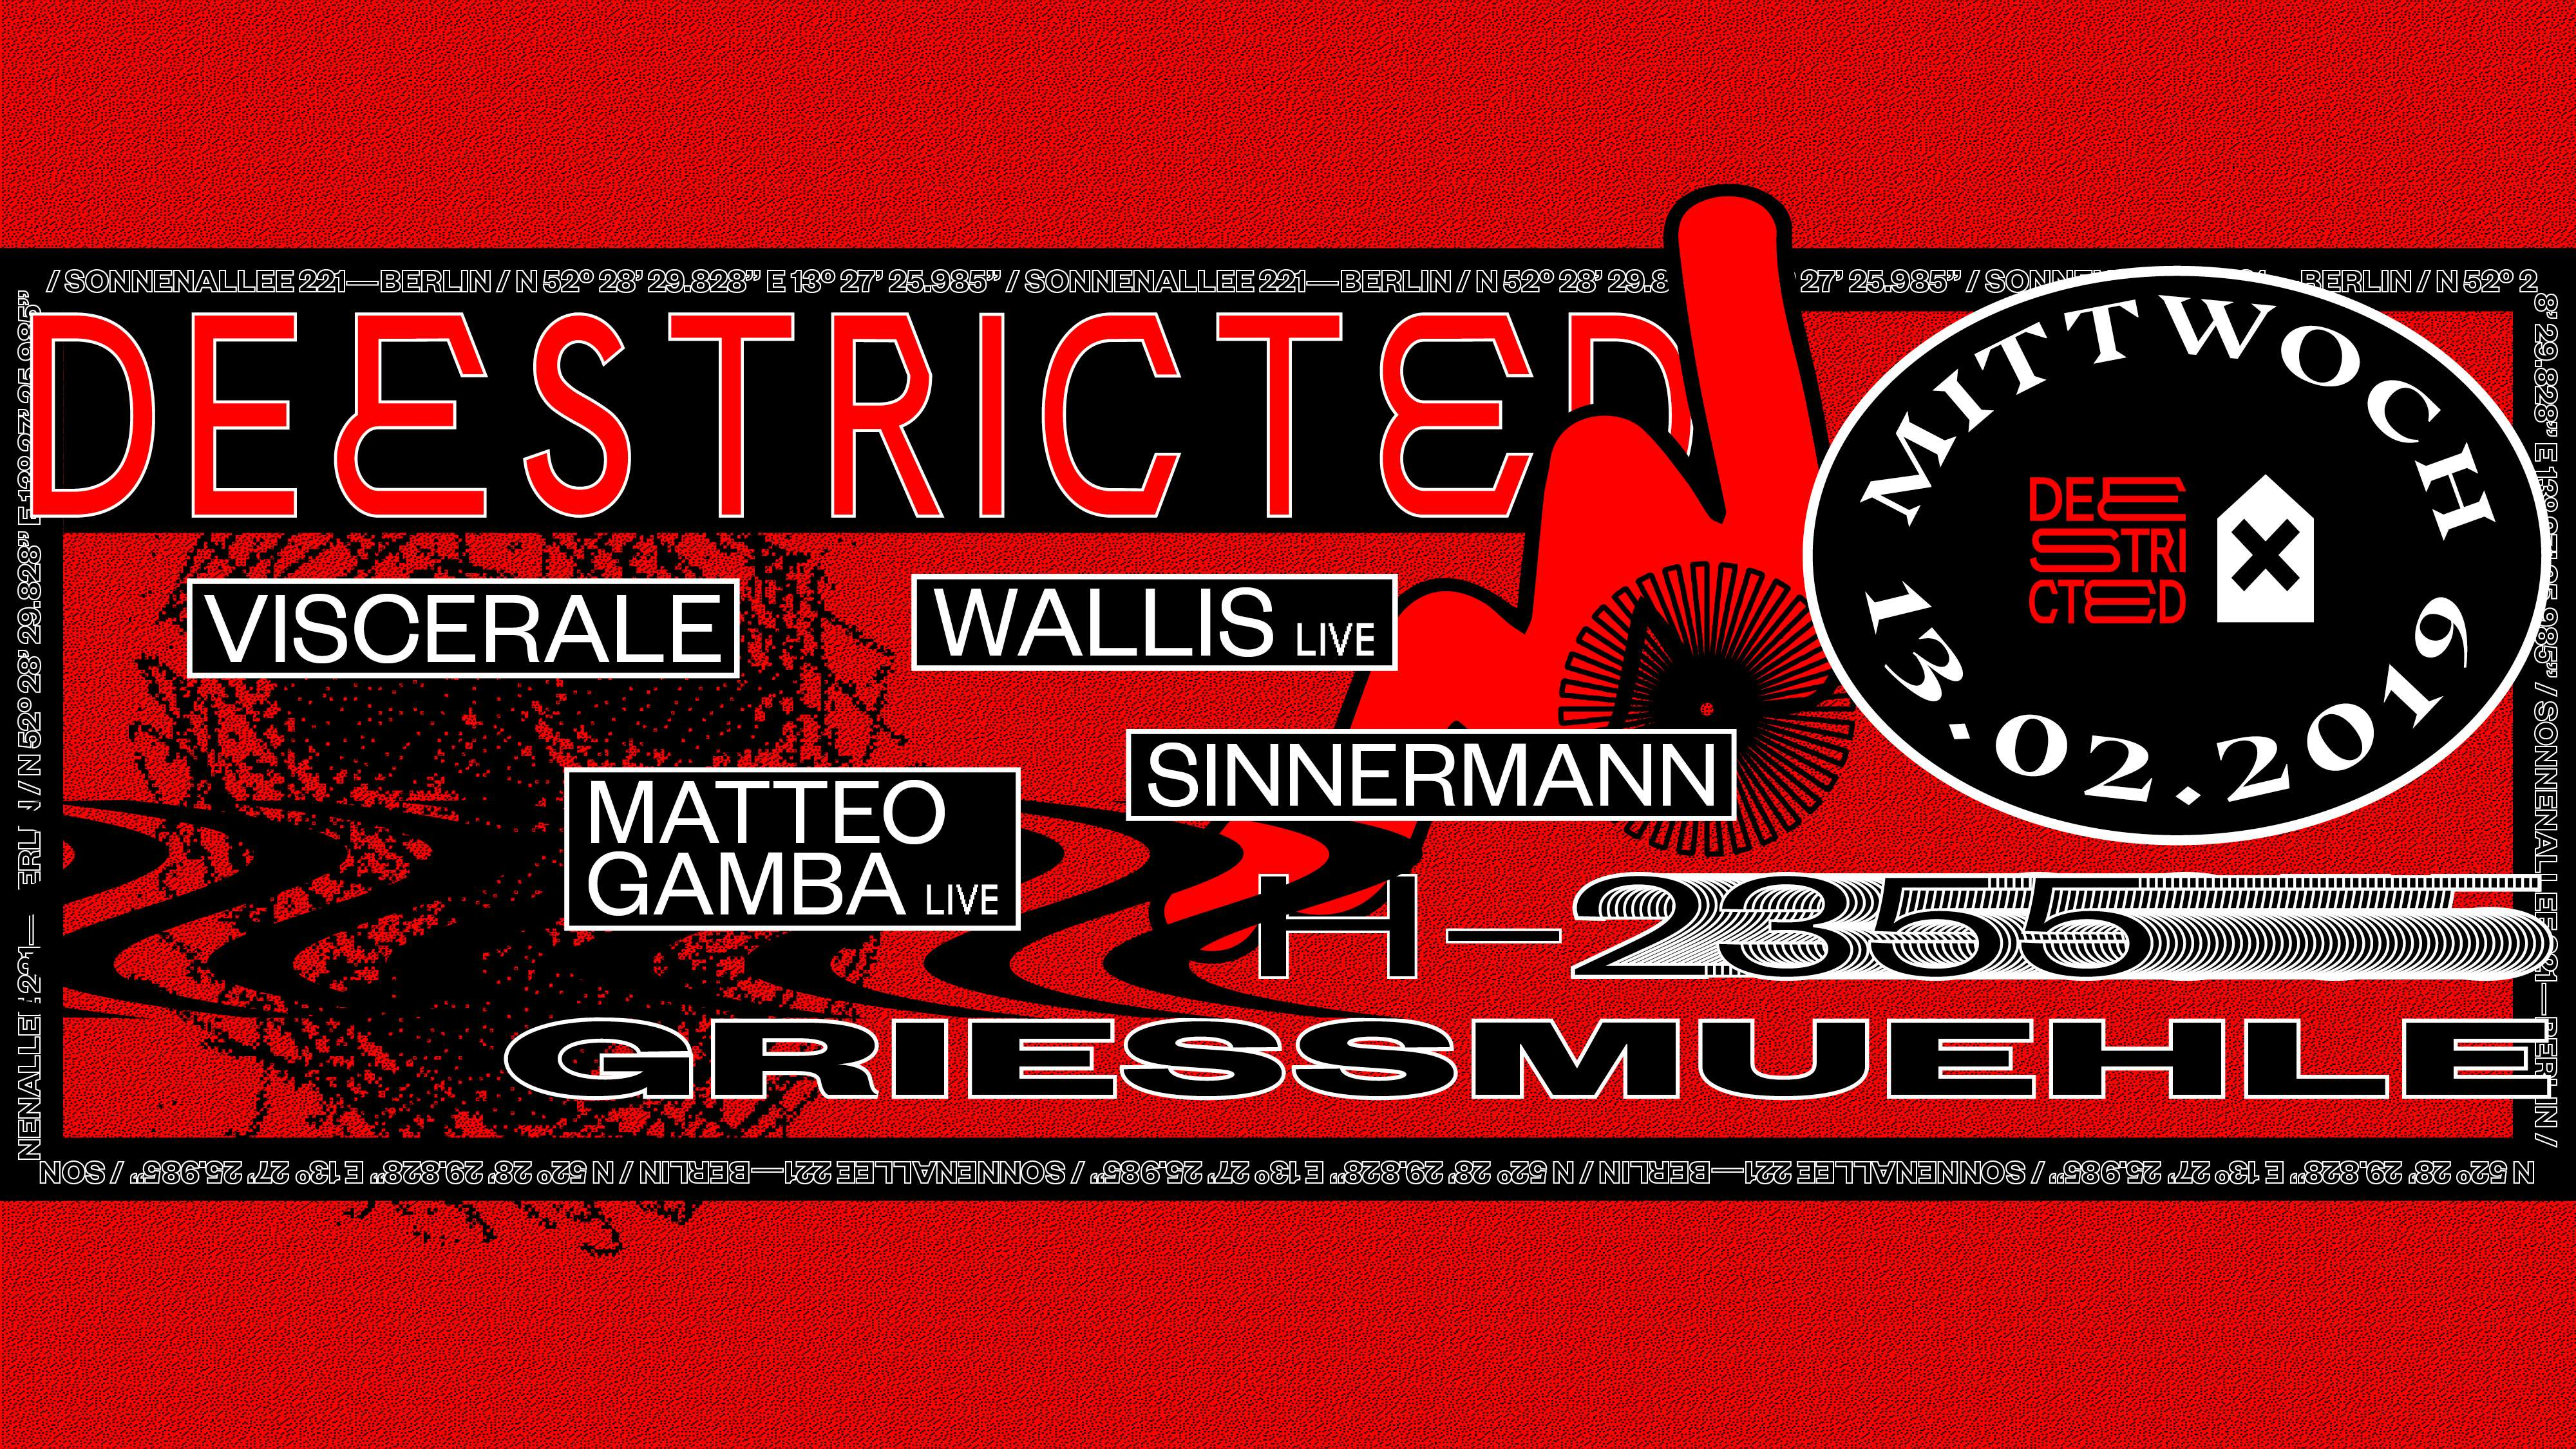 Deestricted with Viscerale, Wallis Live & more